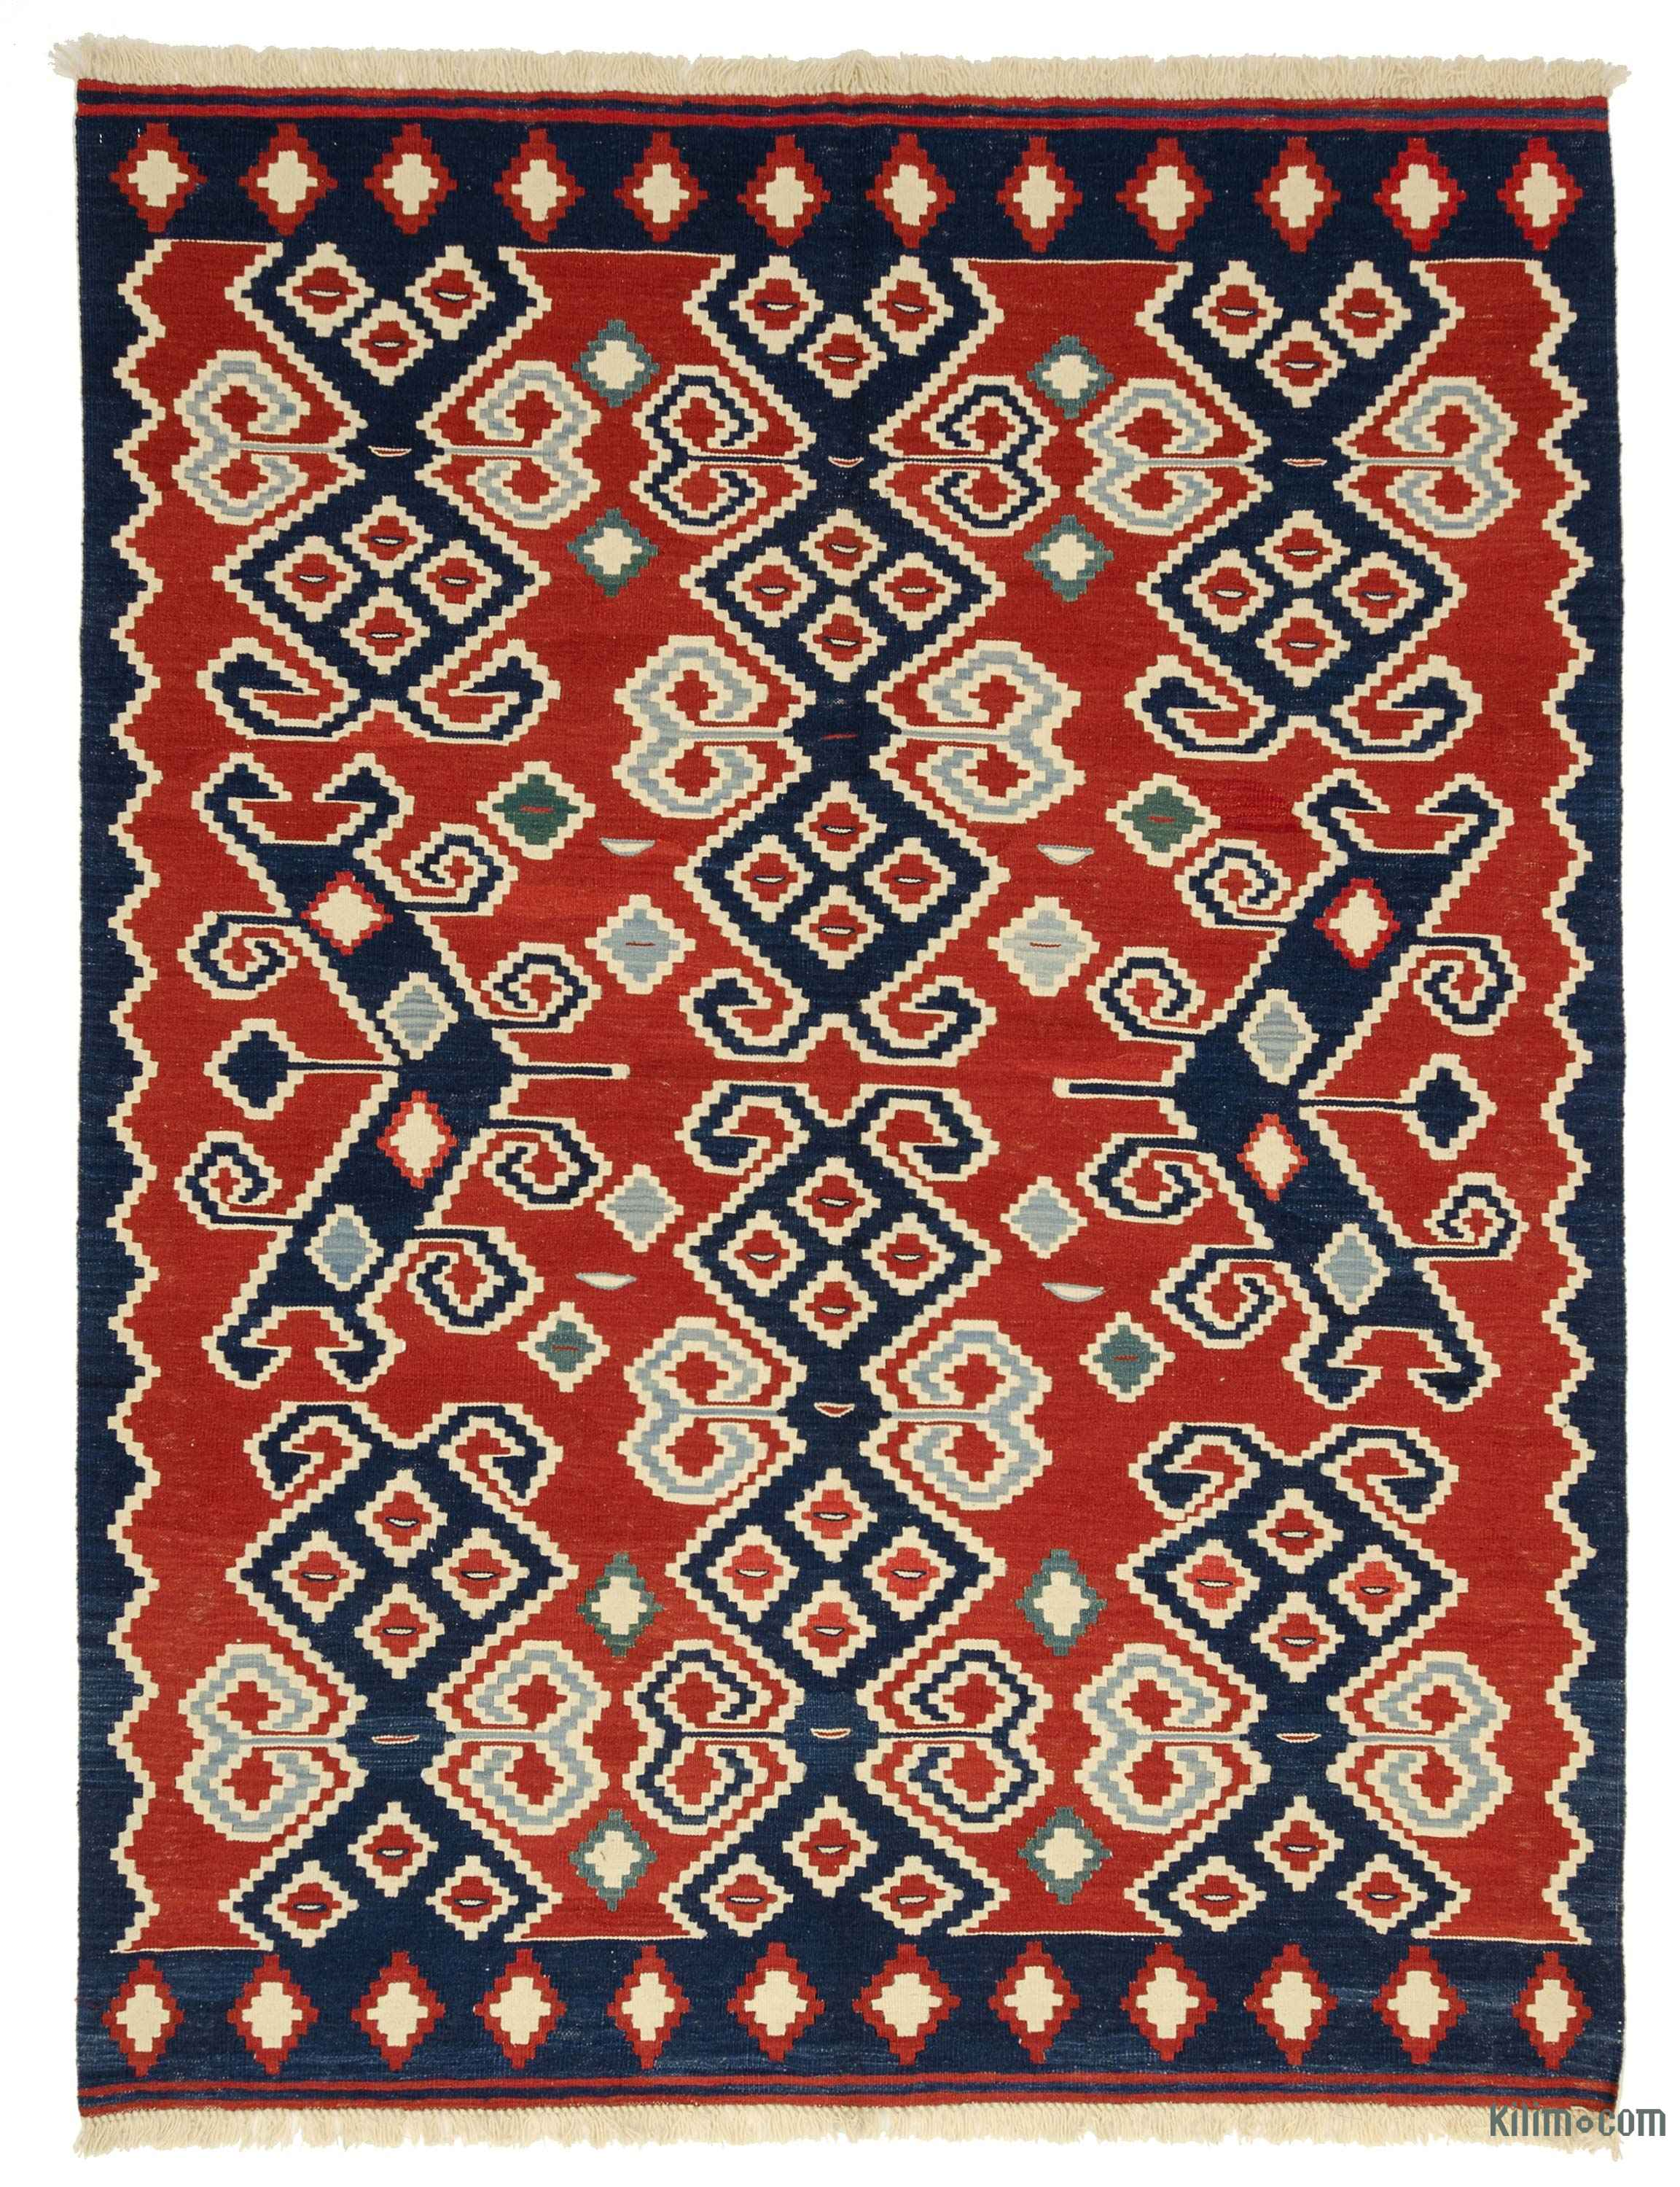 Kilim rugs on sale rugs ideas for Kilim designs